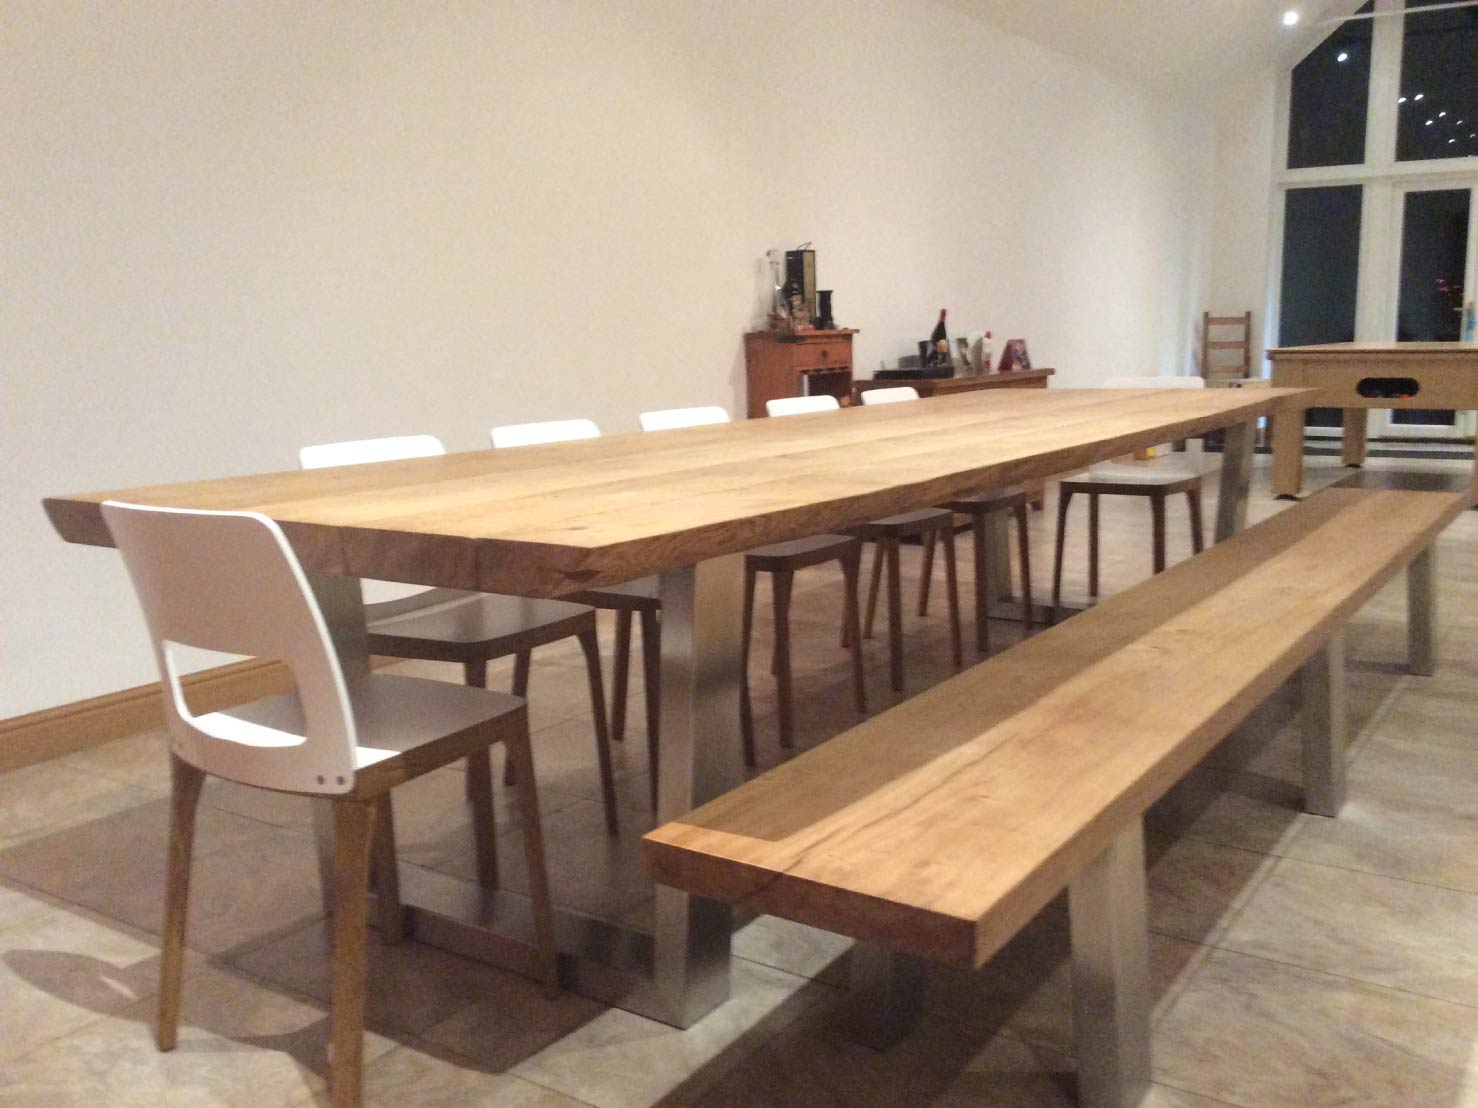 wood-dining-table-set-from-abacus-tables-komodo-3.3-with-matching-bench-&-chairs-project-454